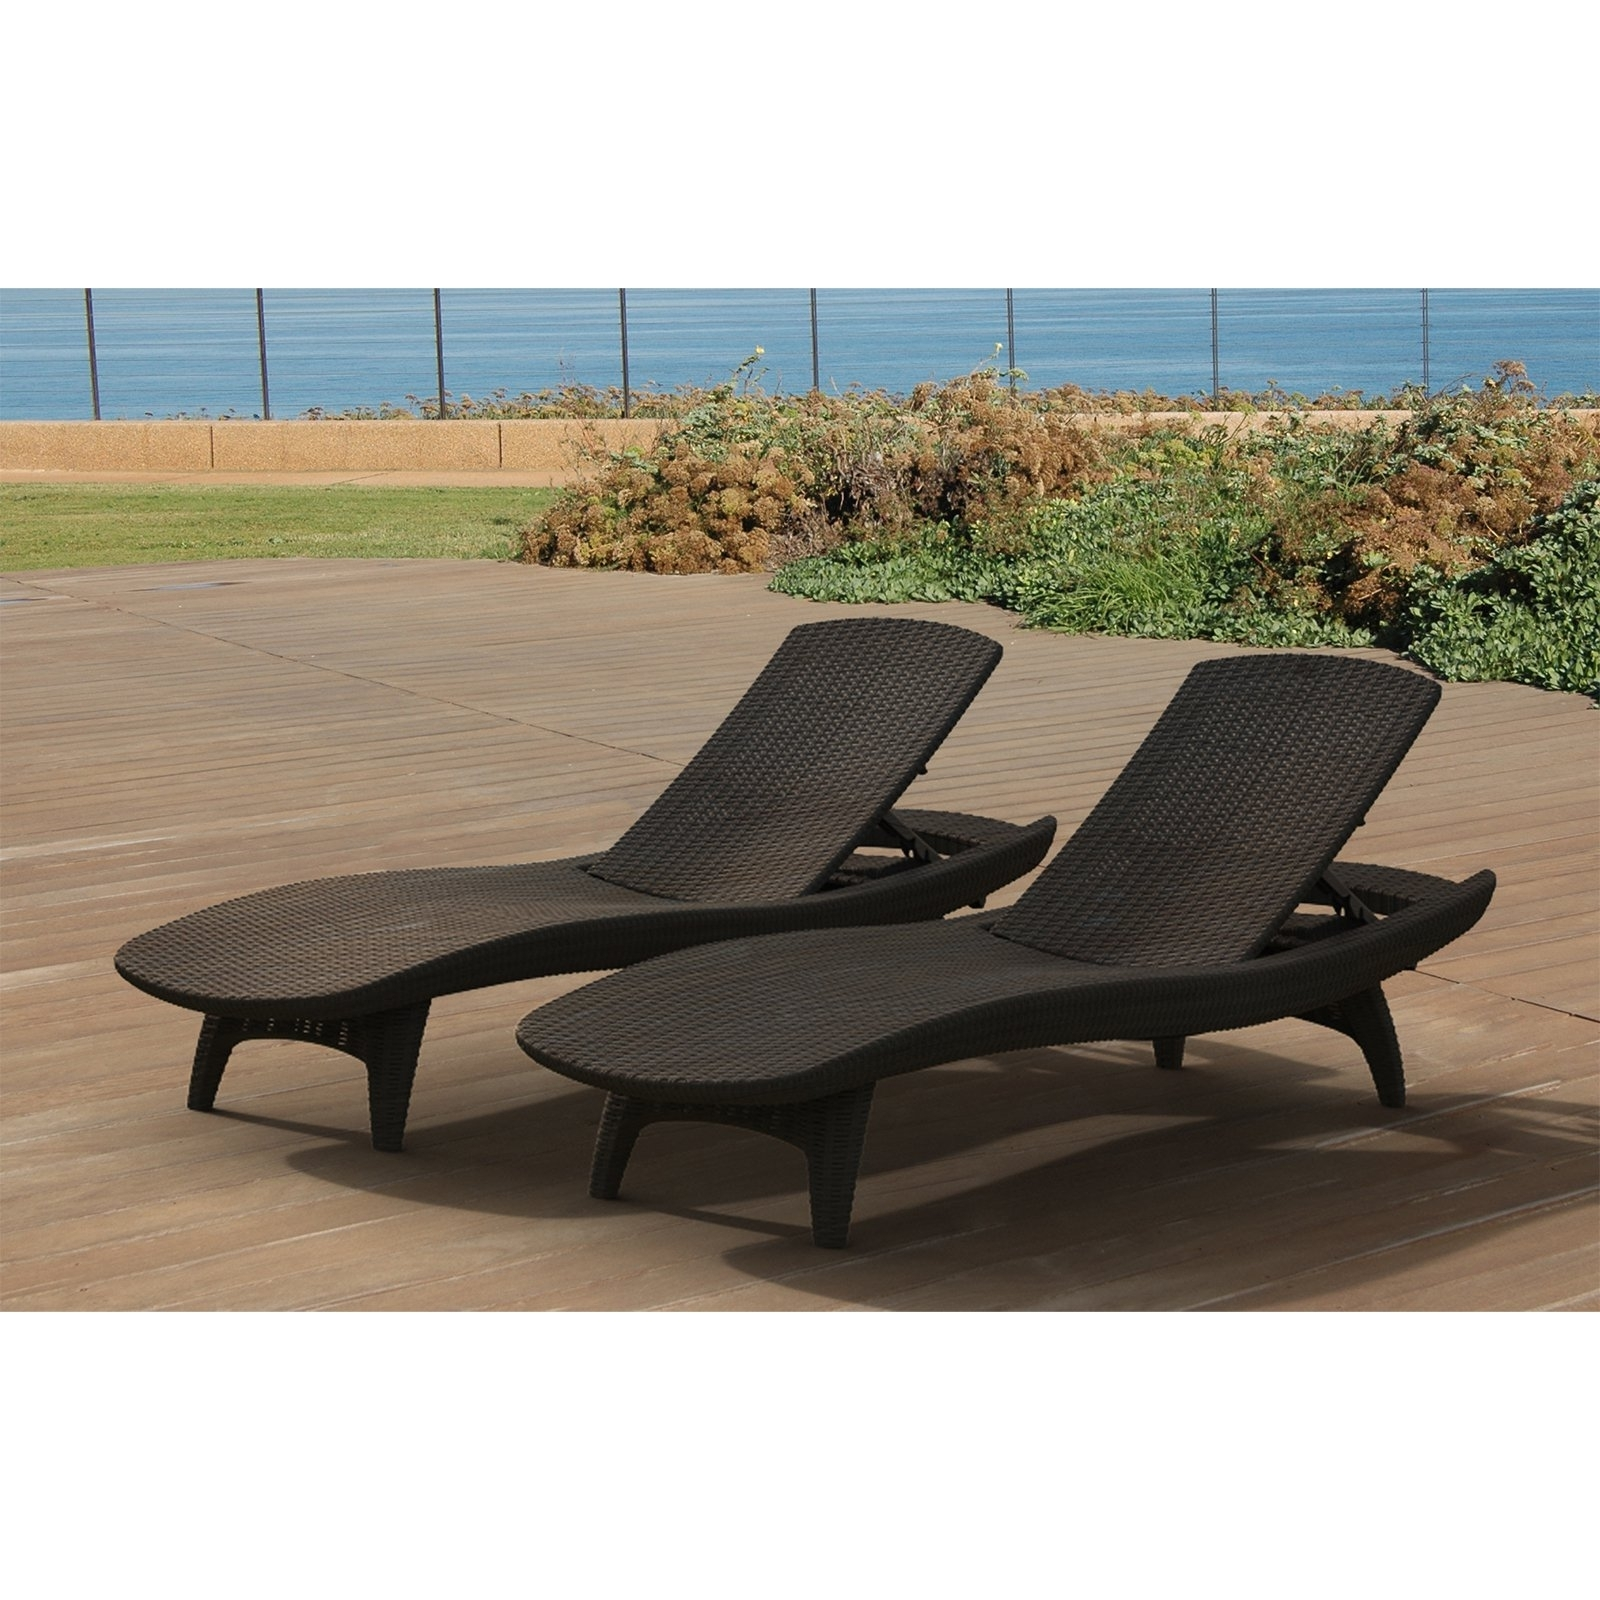 Outdoor Chaise Lounge Chairs Under $200 Inside Current Keter Outdoor Chaise Lounge – Set Of  (View 9 of 15)